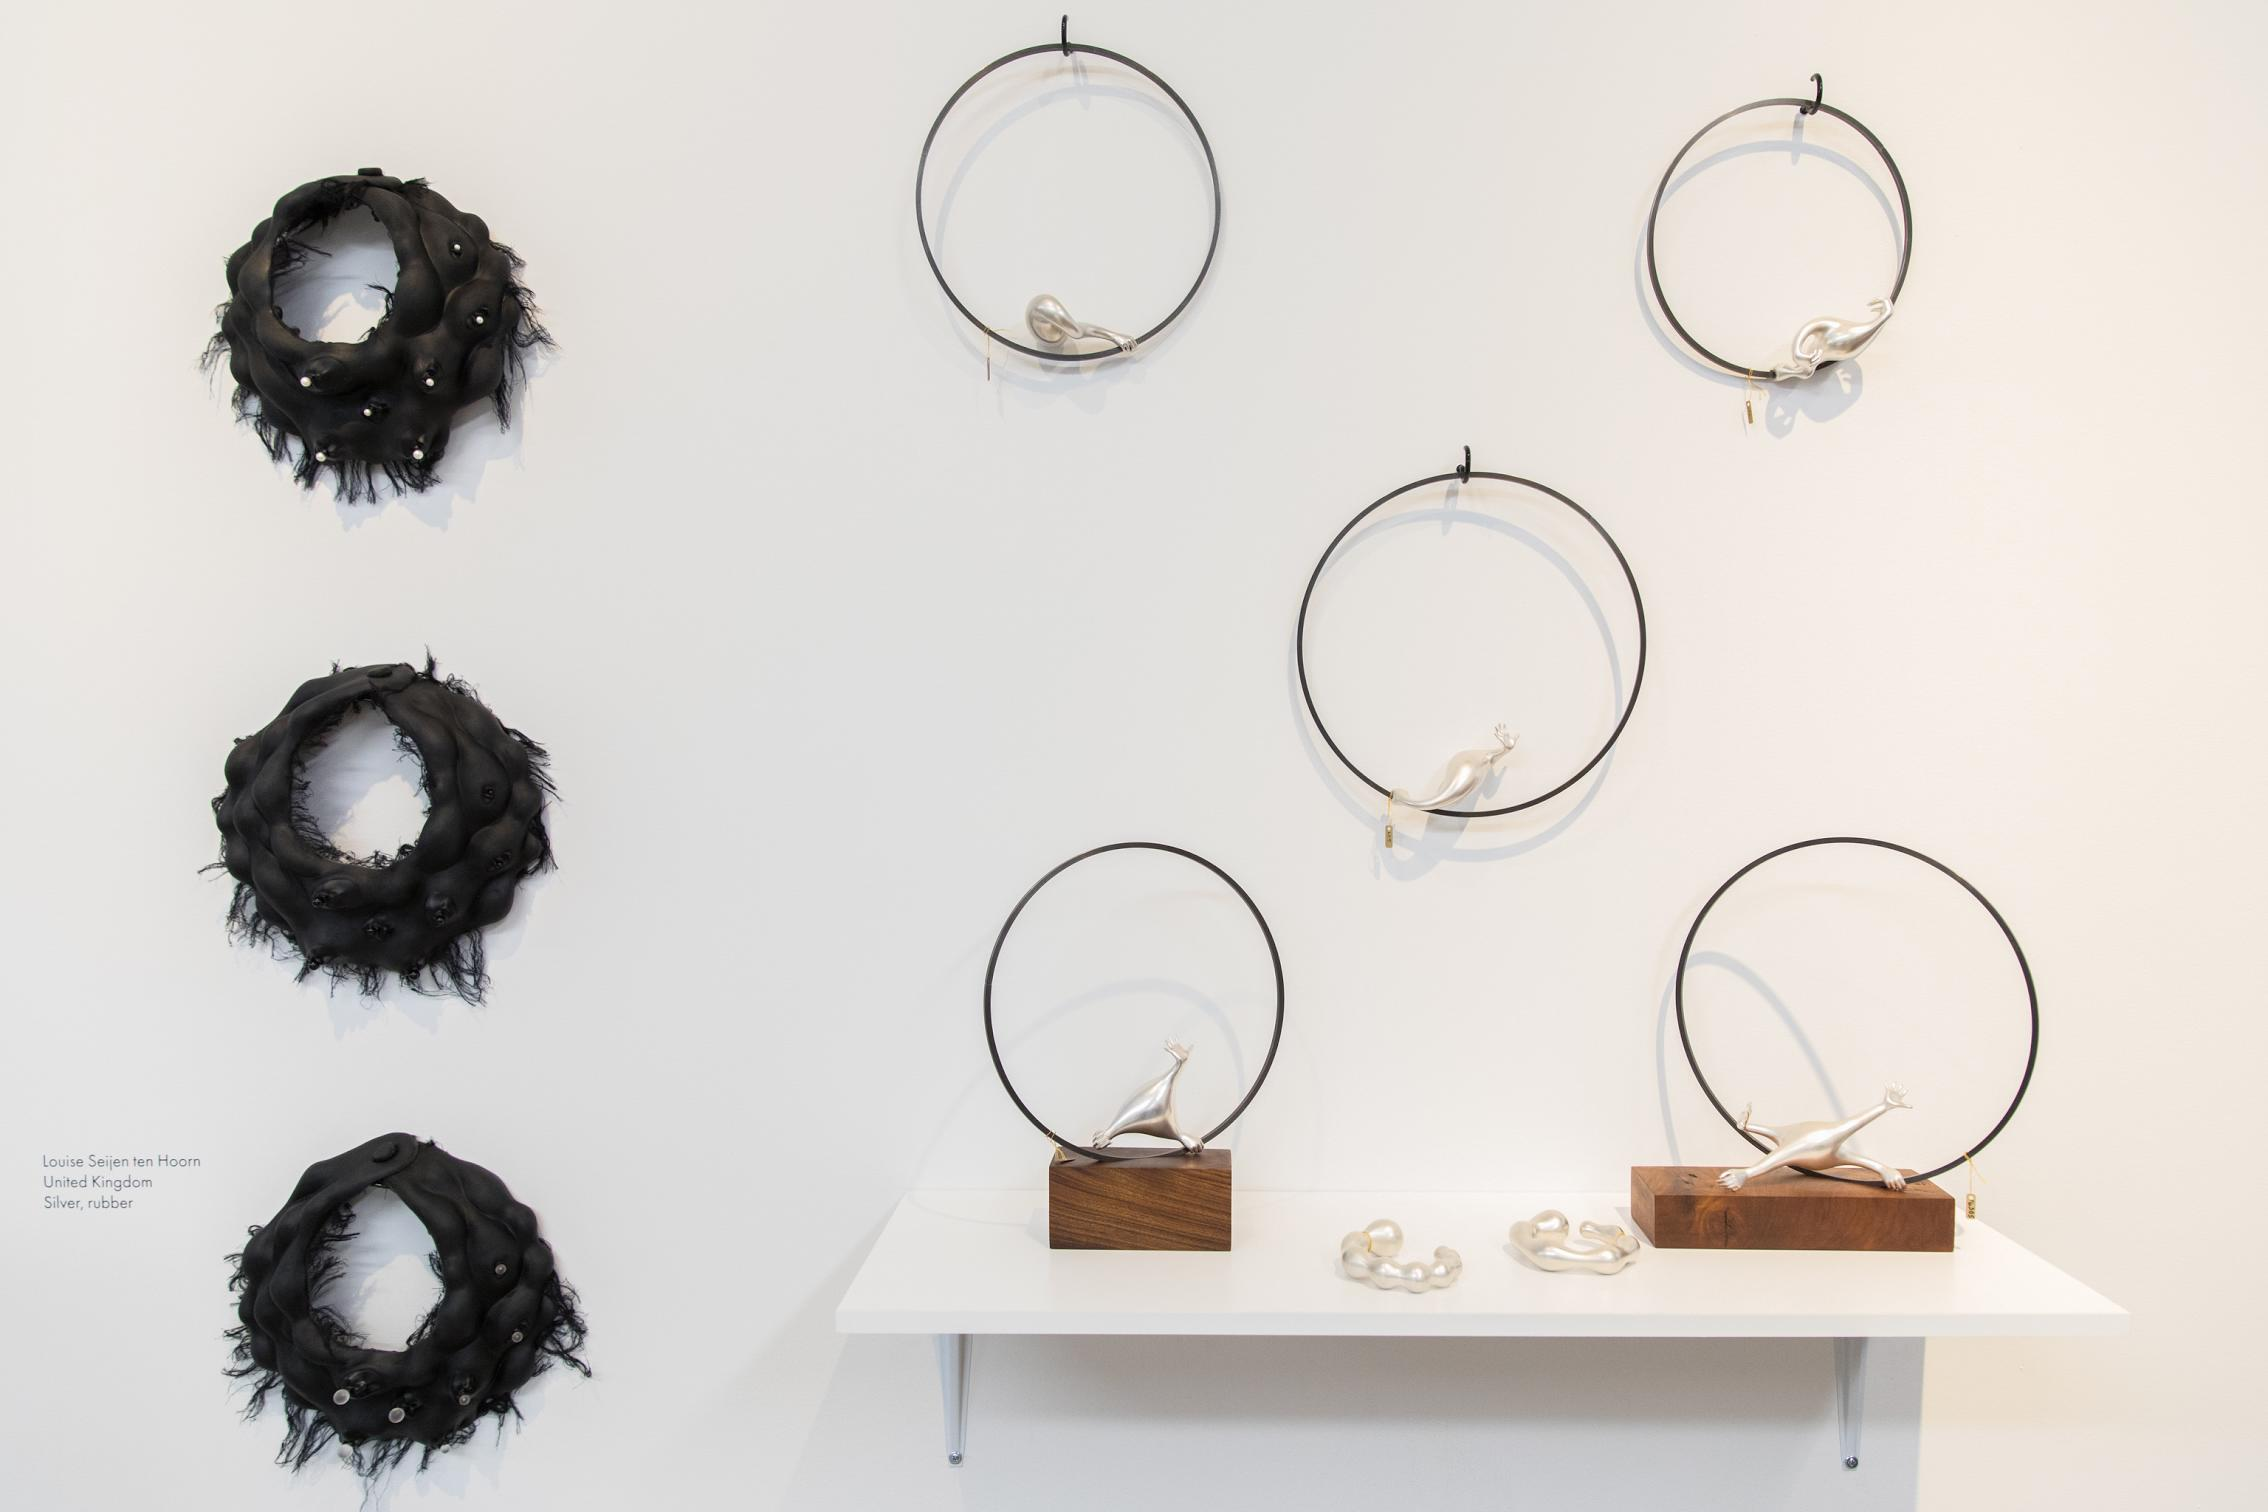 My Booth - I showed two collections: on the left there are necklaces made with black rubber and on the right are the steel and silver pieces from the Equilibrium Collection